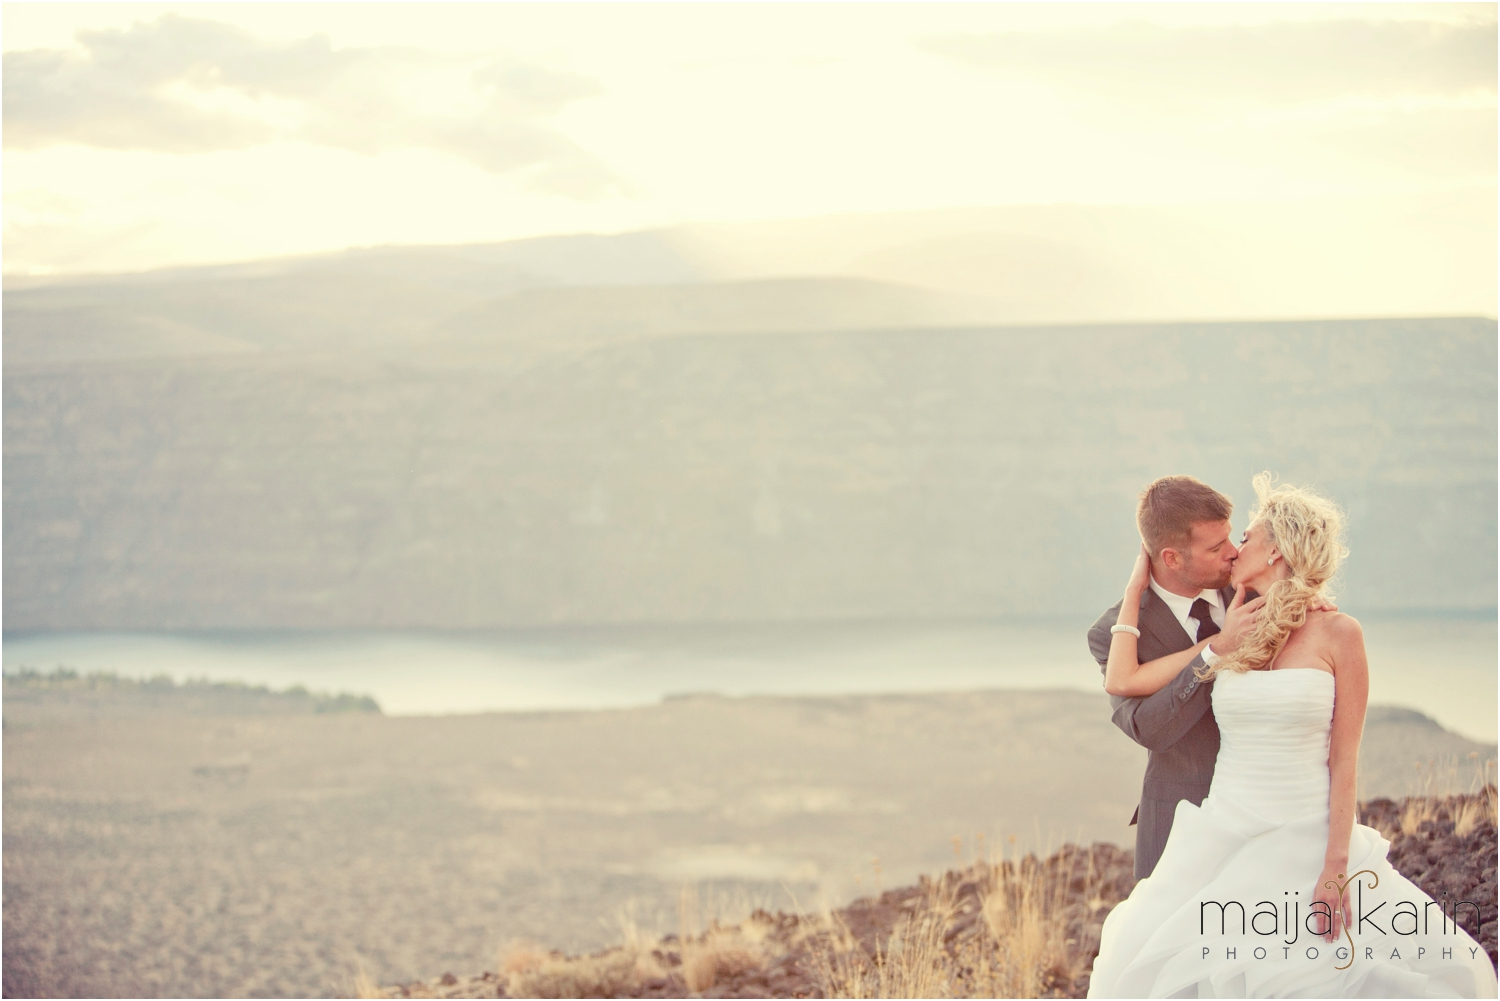 stress-free-images-wedding-guide-maija-karin-photography_0005.jpg